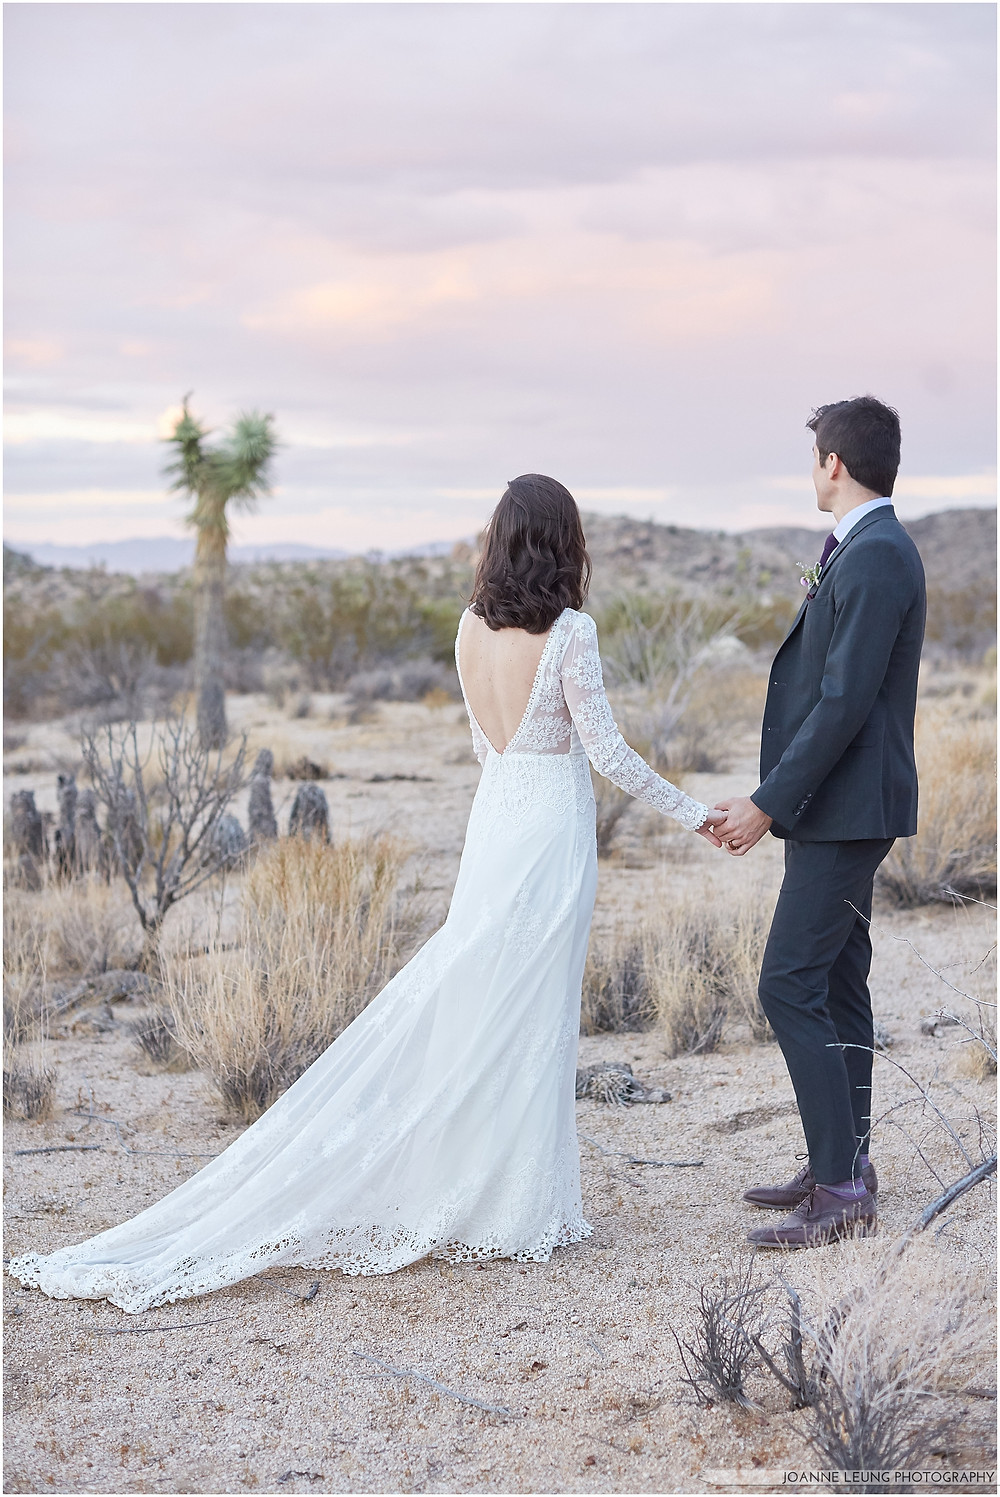 Joshua Tree Live Oak Wedding untraditional nature rocks amazing bridal portrait kiss sunset old oak tree wedding posing back shot posing